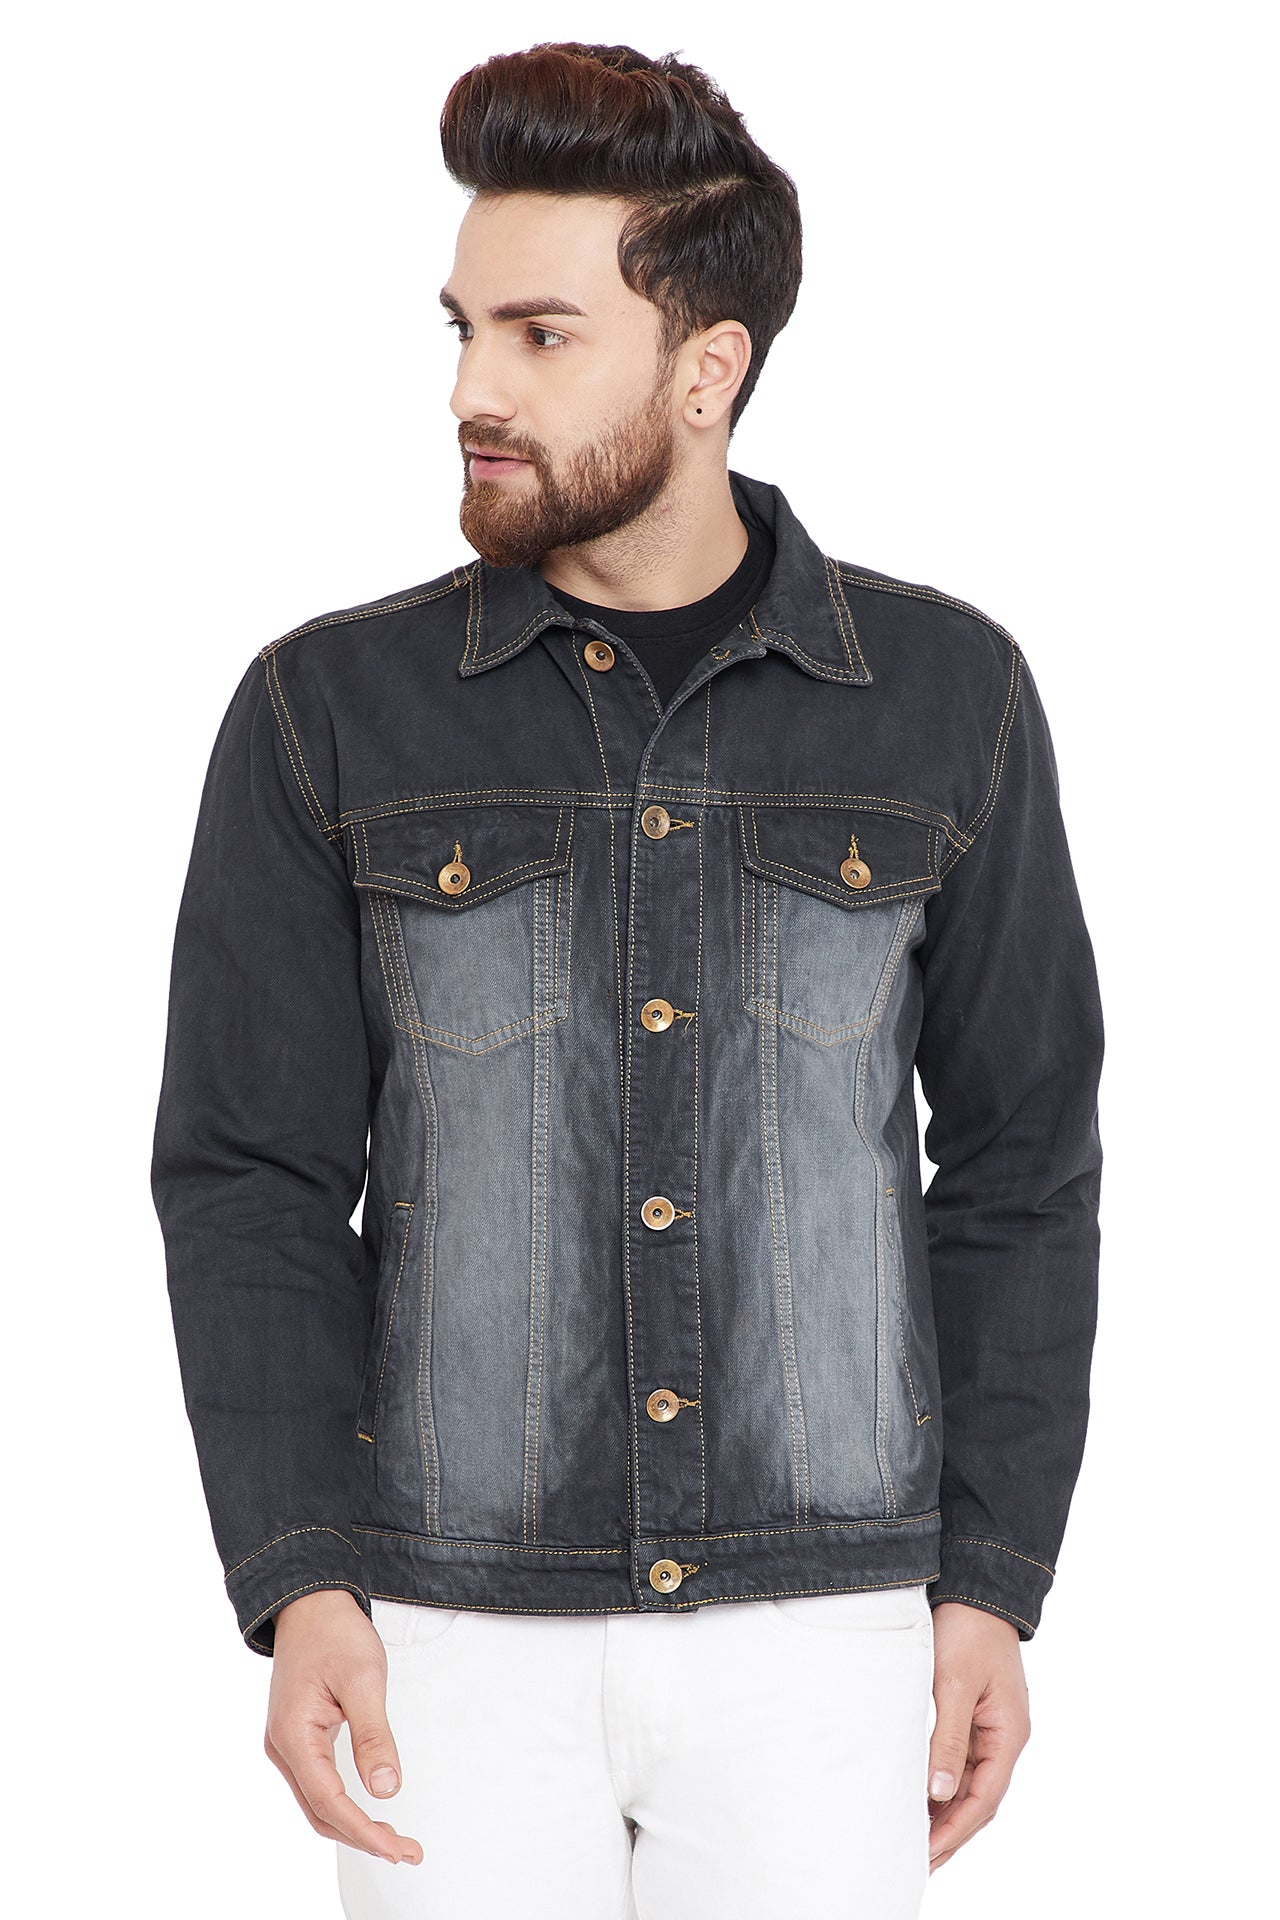 KROSSSTITCH Men's Full Sleeves Denim Jacket with Button Closure| With Stripe Trim Detail on Sleeves| Blue